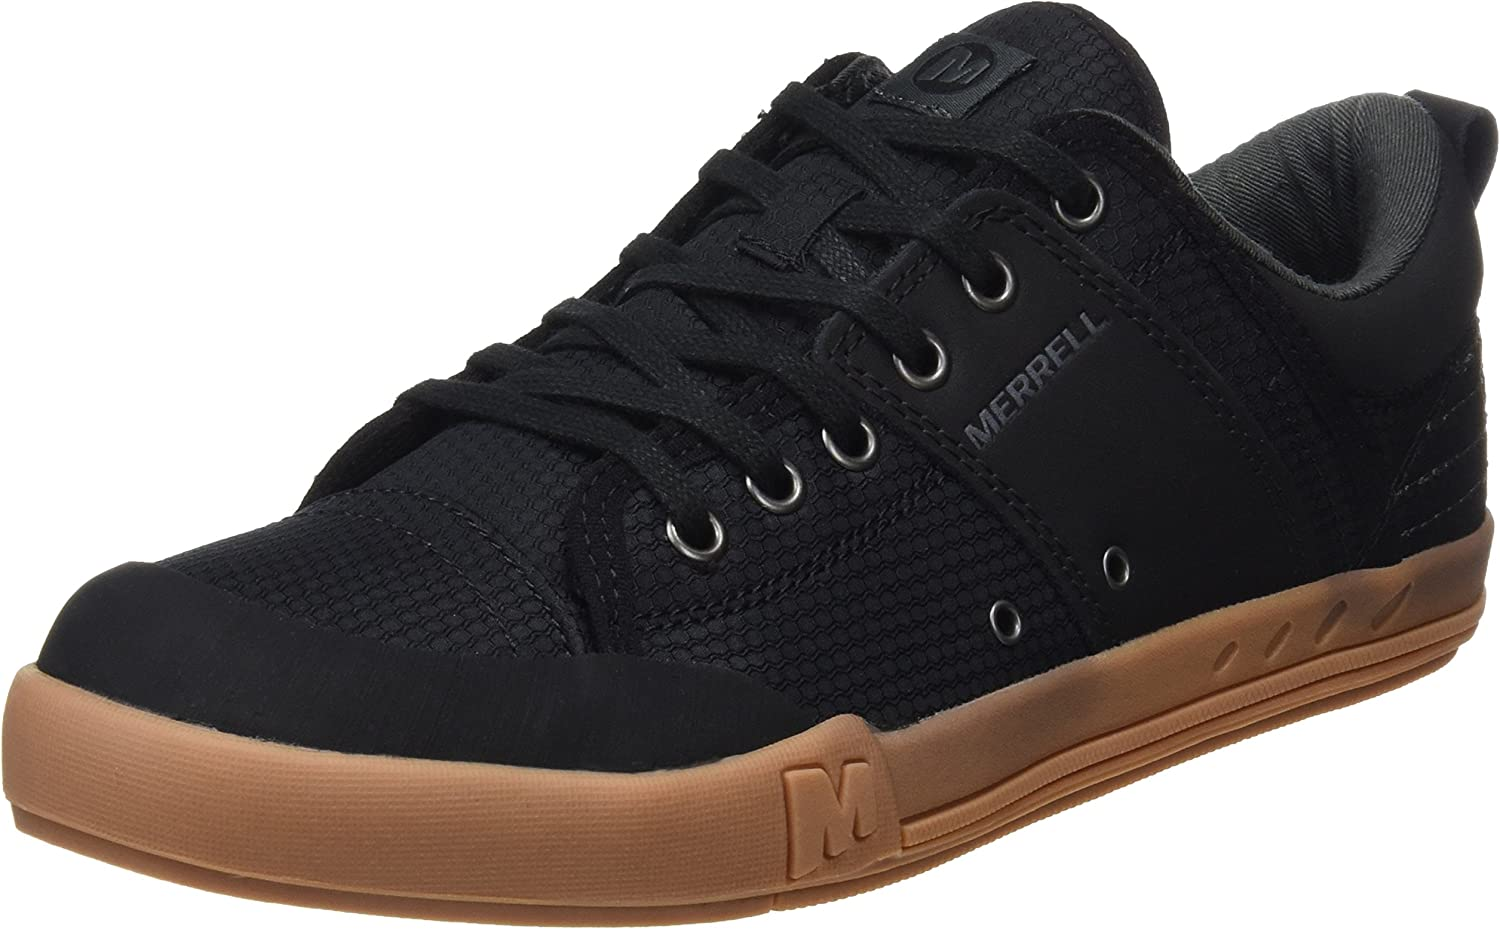 Merrell Men's Rant Edge Trainers